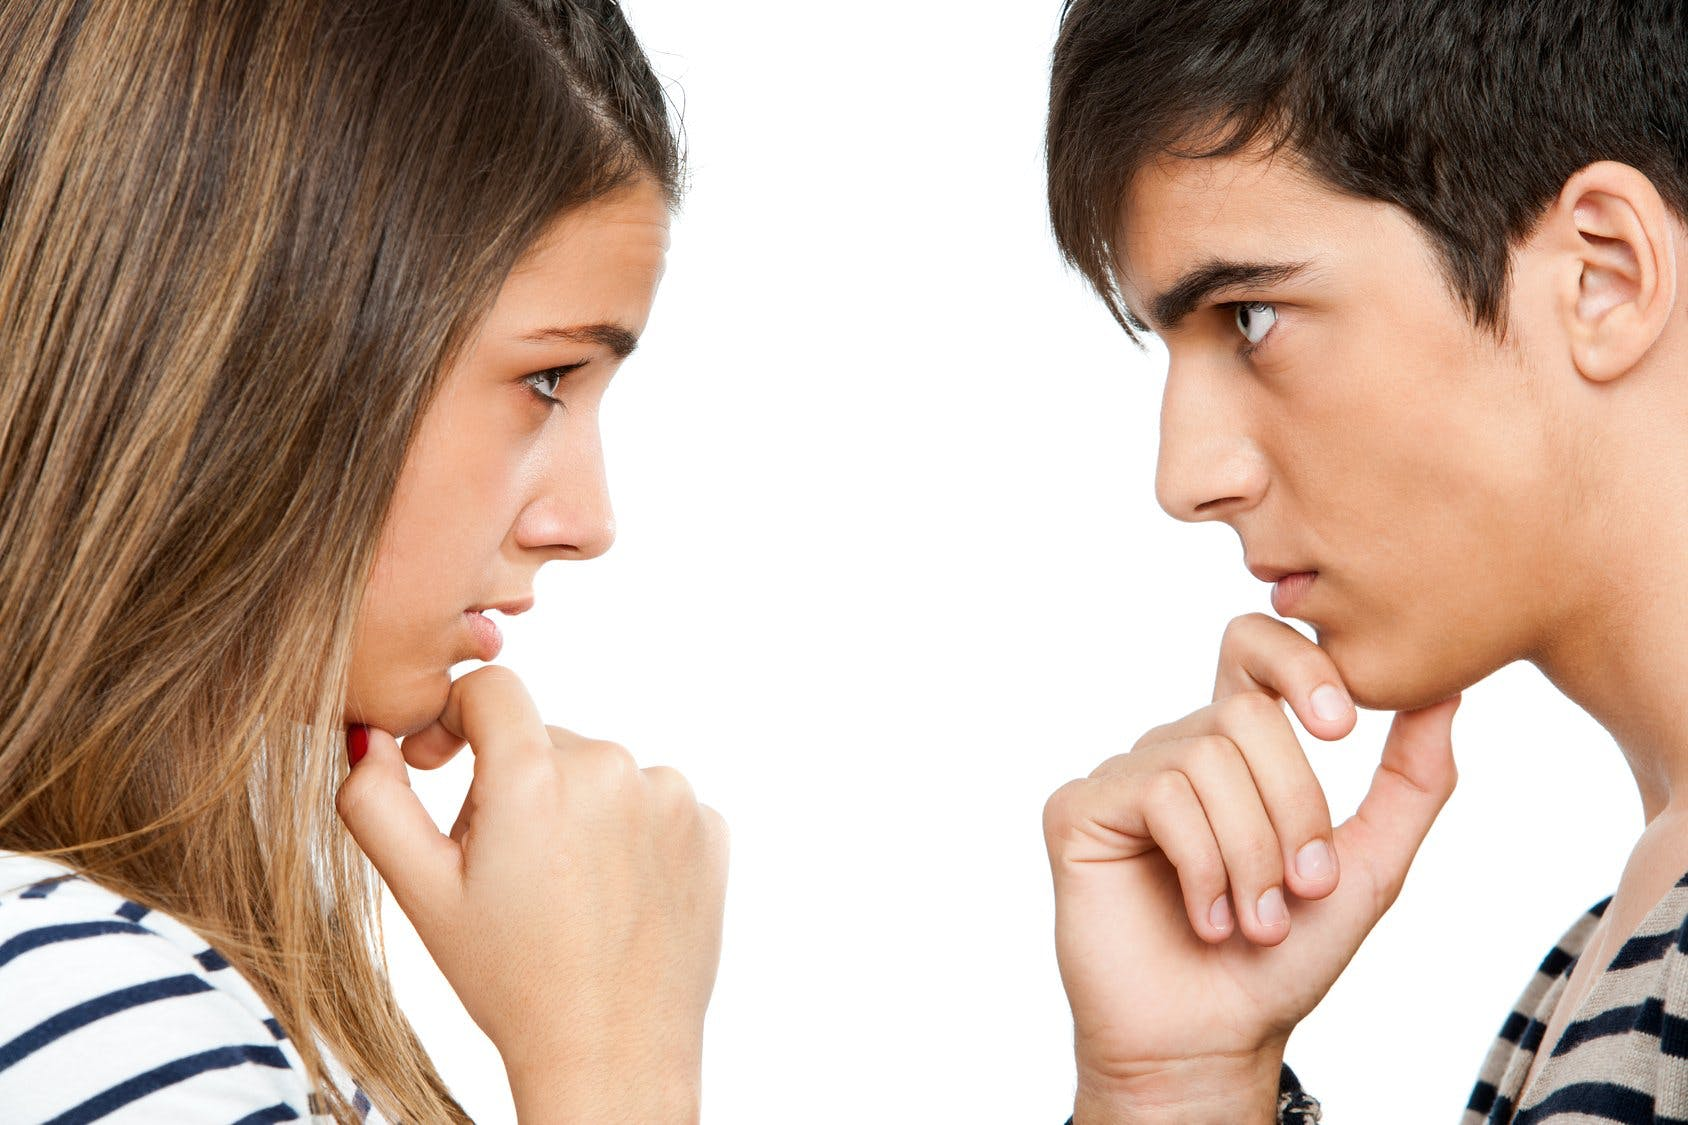 5 Steps to Overcoming Relationship Communication Barriers